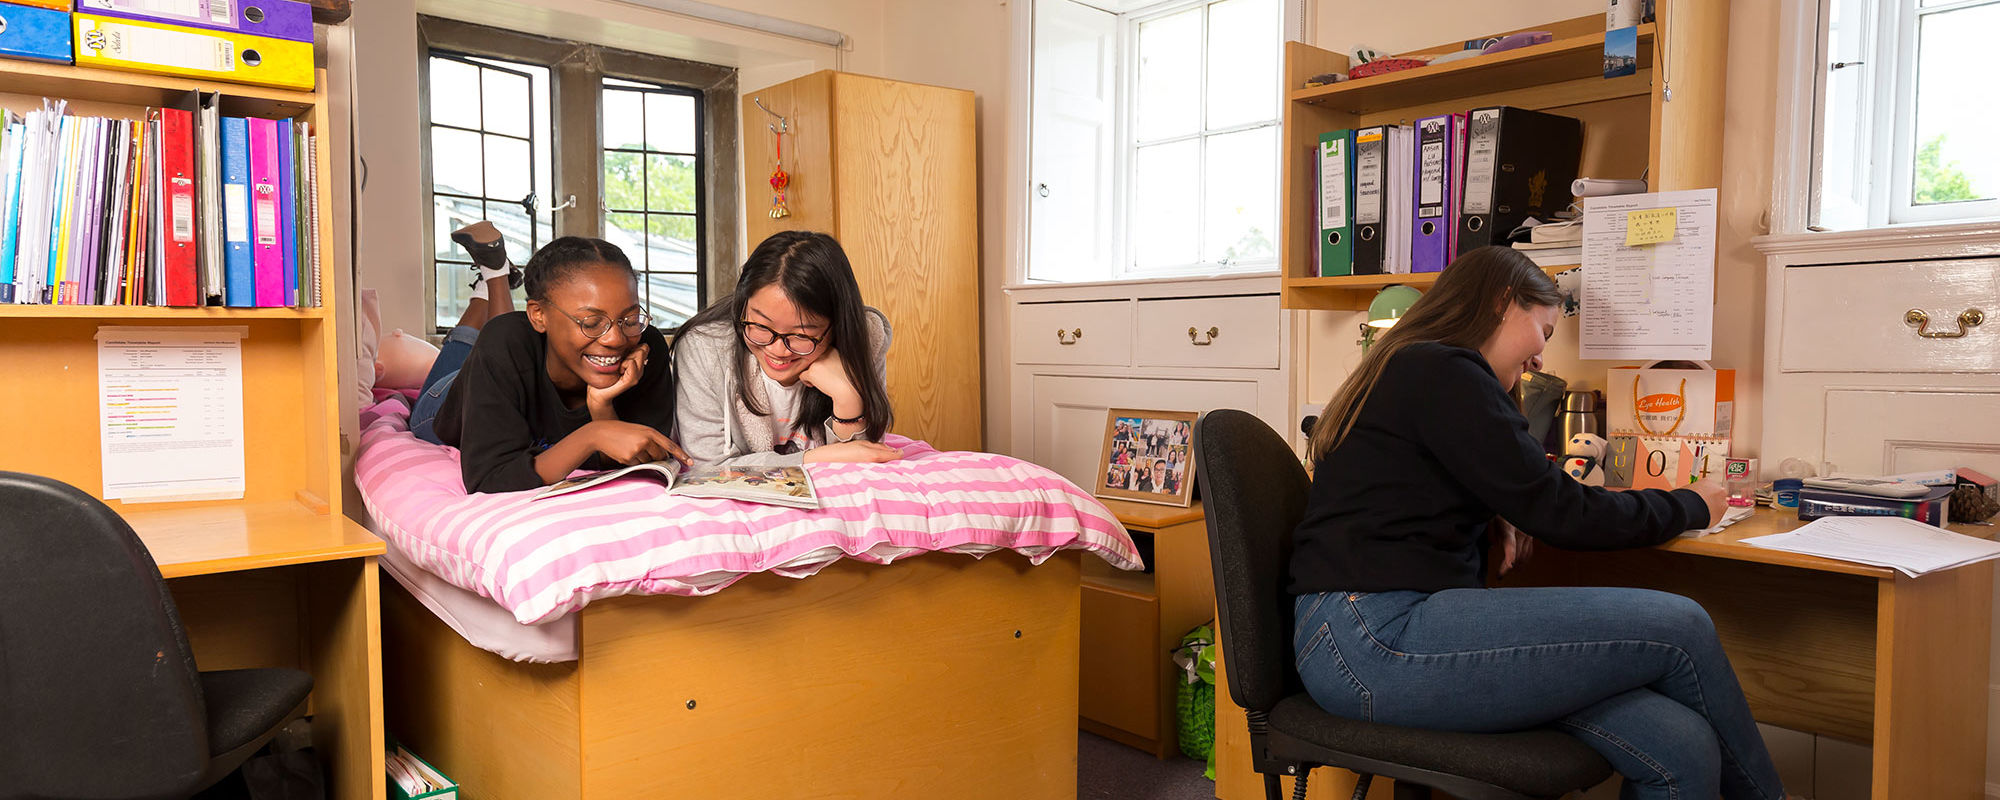 senior school boarders in their dorms at wycliffe college gloucestershire